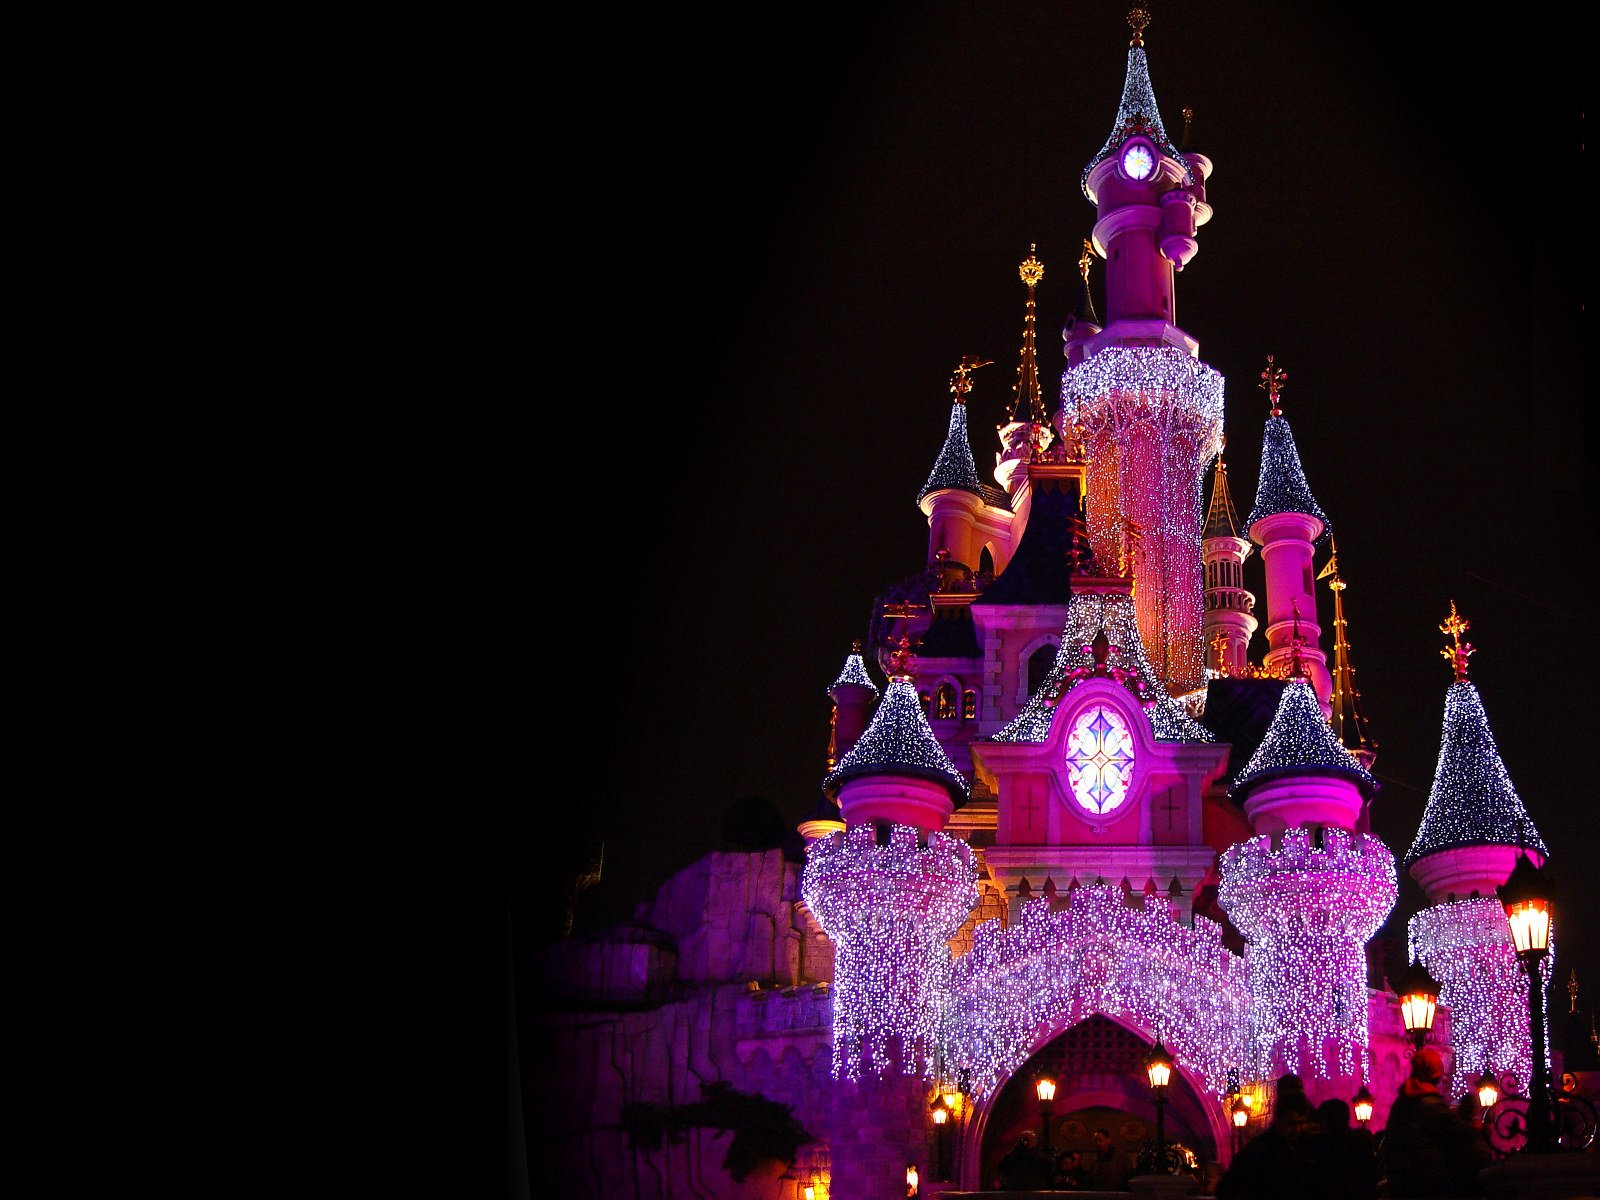 1600x1200 Disney Castle desktop PC and Mac wallpaper 1600x1200